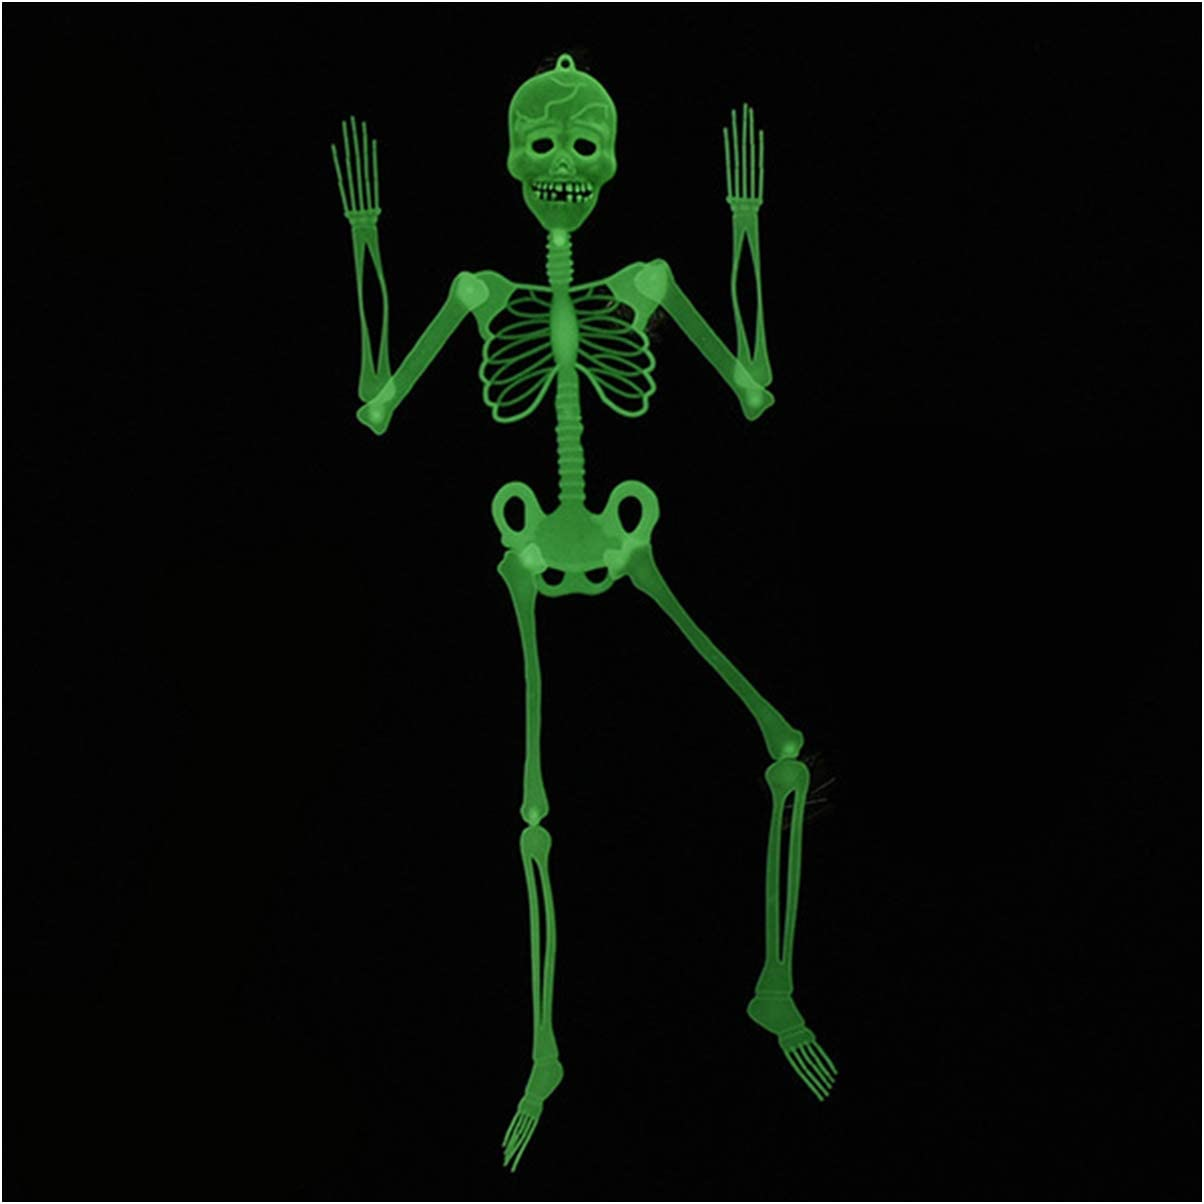 Halloween Decoration Decor Posable Skeleton - Luminous Noctilucent Life Size Plastic Skeleton, Outdoor Crazy Scary Hanging Props, Clearance